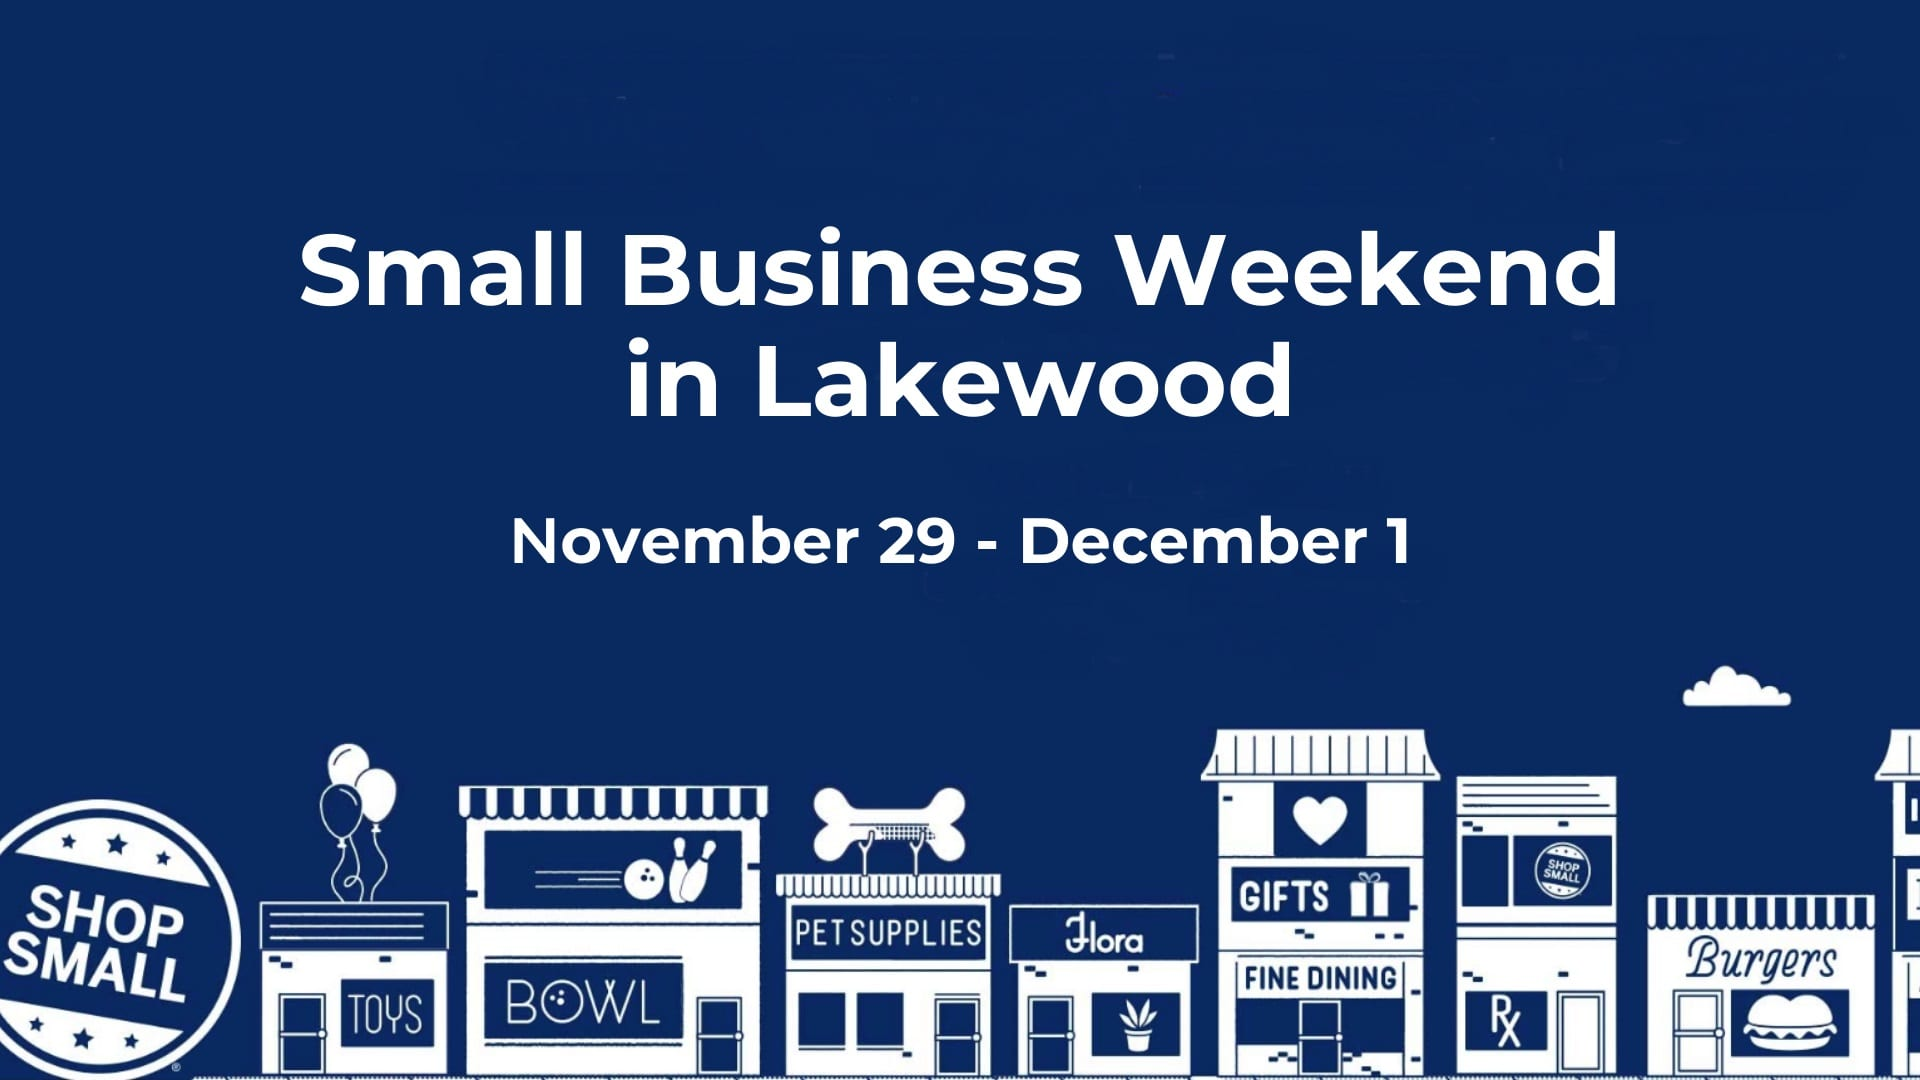 Small Business Weekend in Lakewood